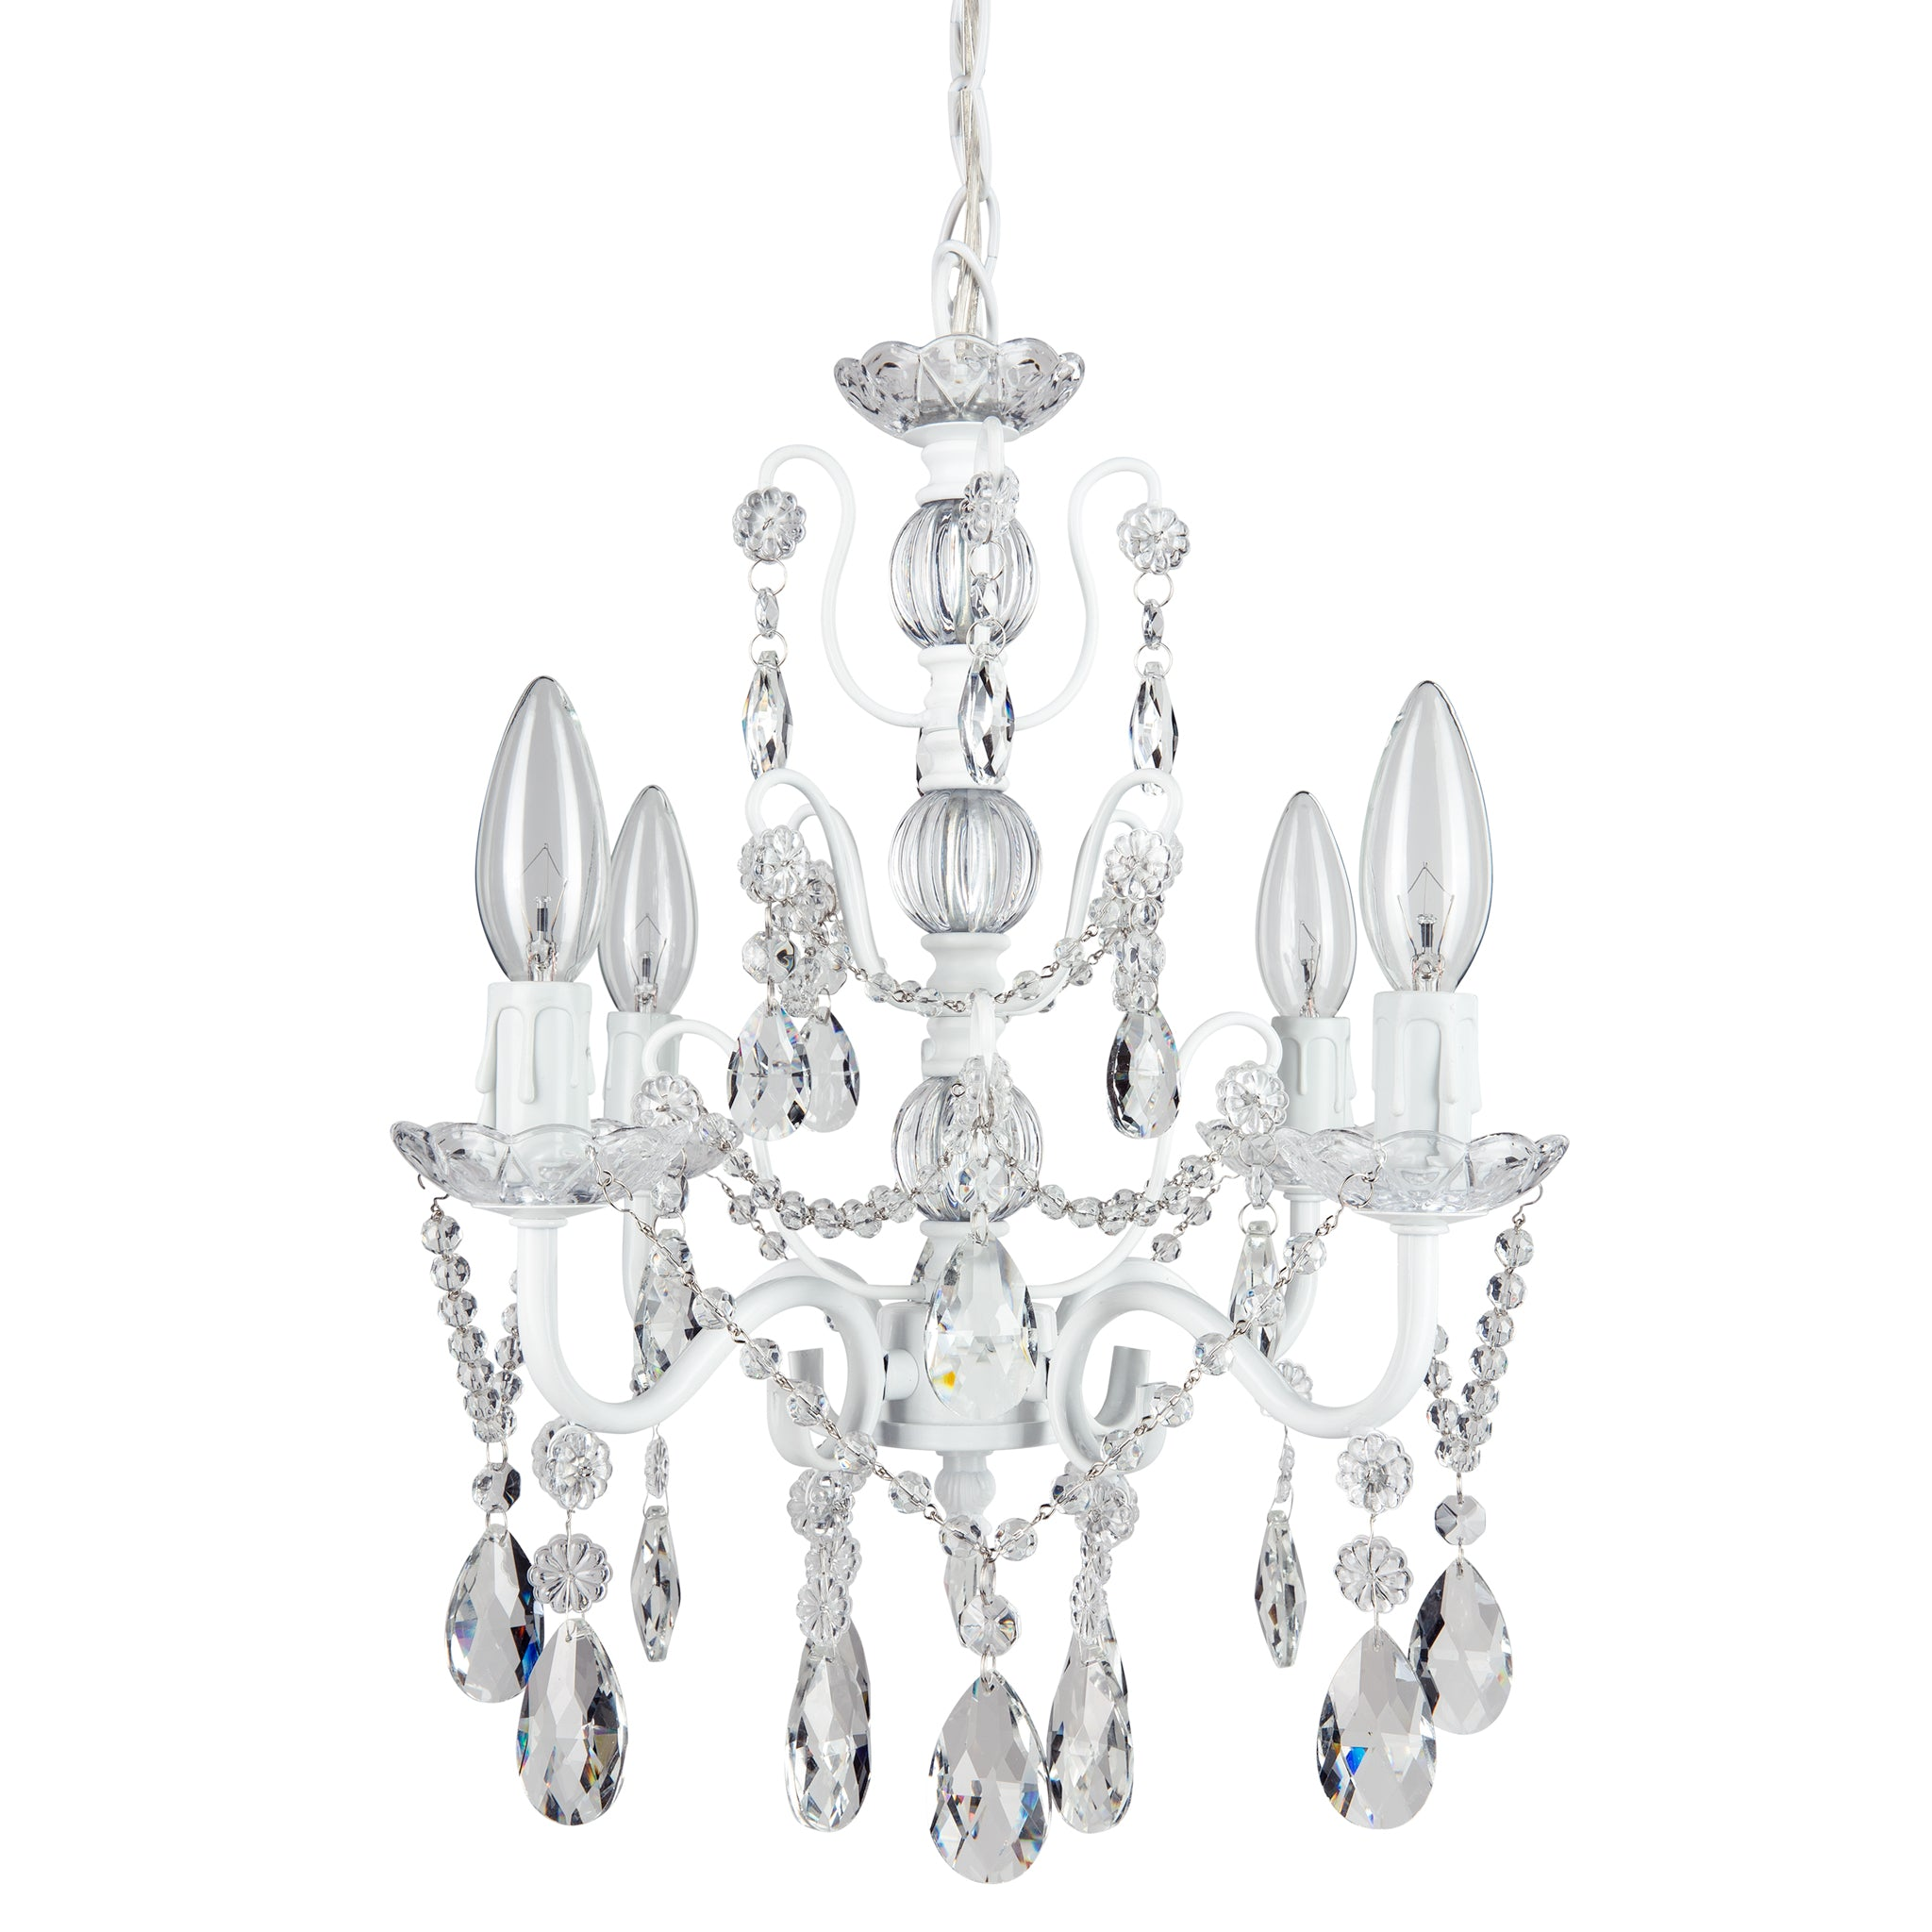 Amalfi Decor 4 Light Shabby Chic Crystal Plug-In Chandelier (White) | H | Wrought Iron Frame with Glass Crystals